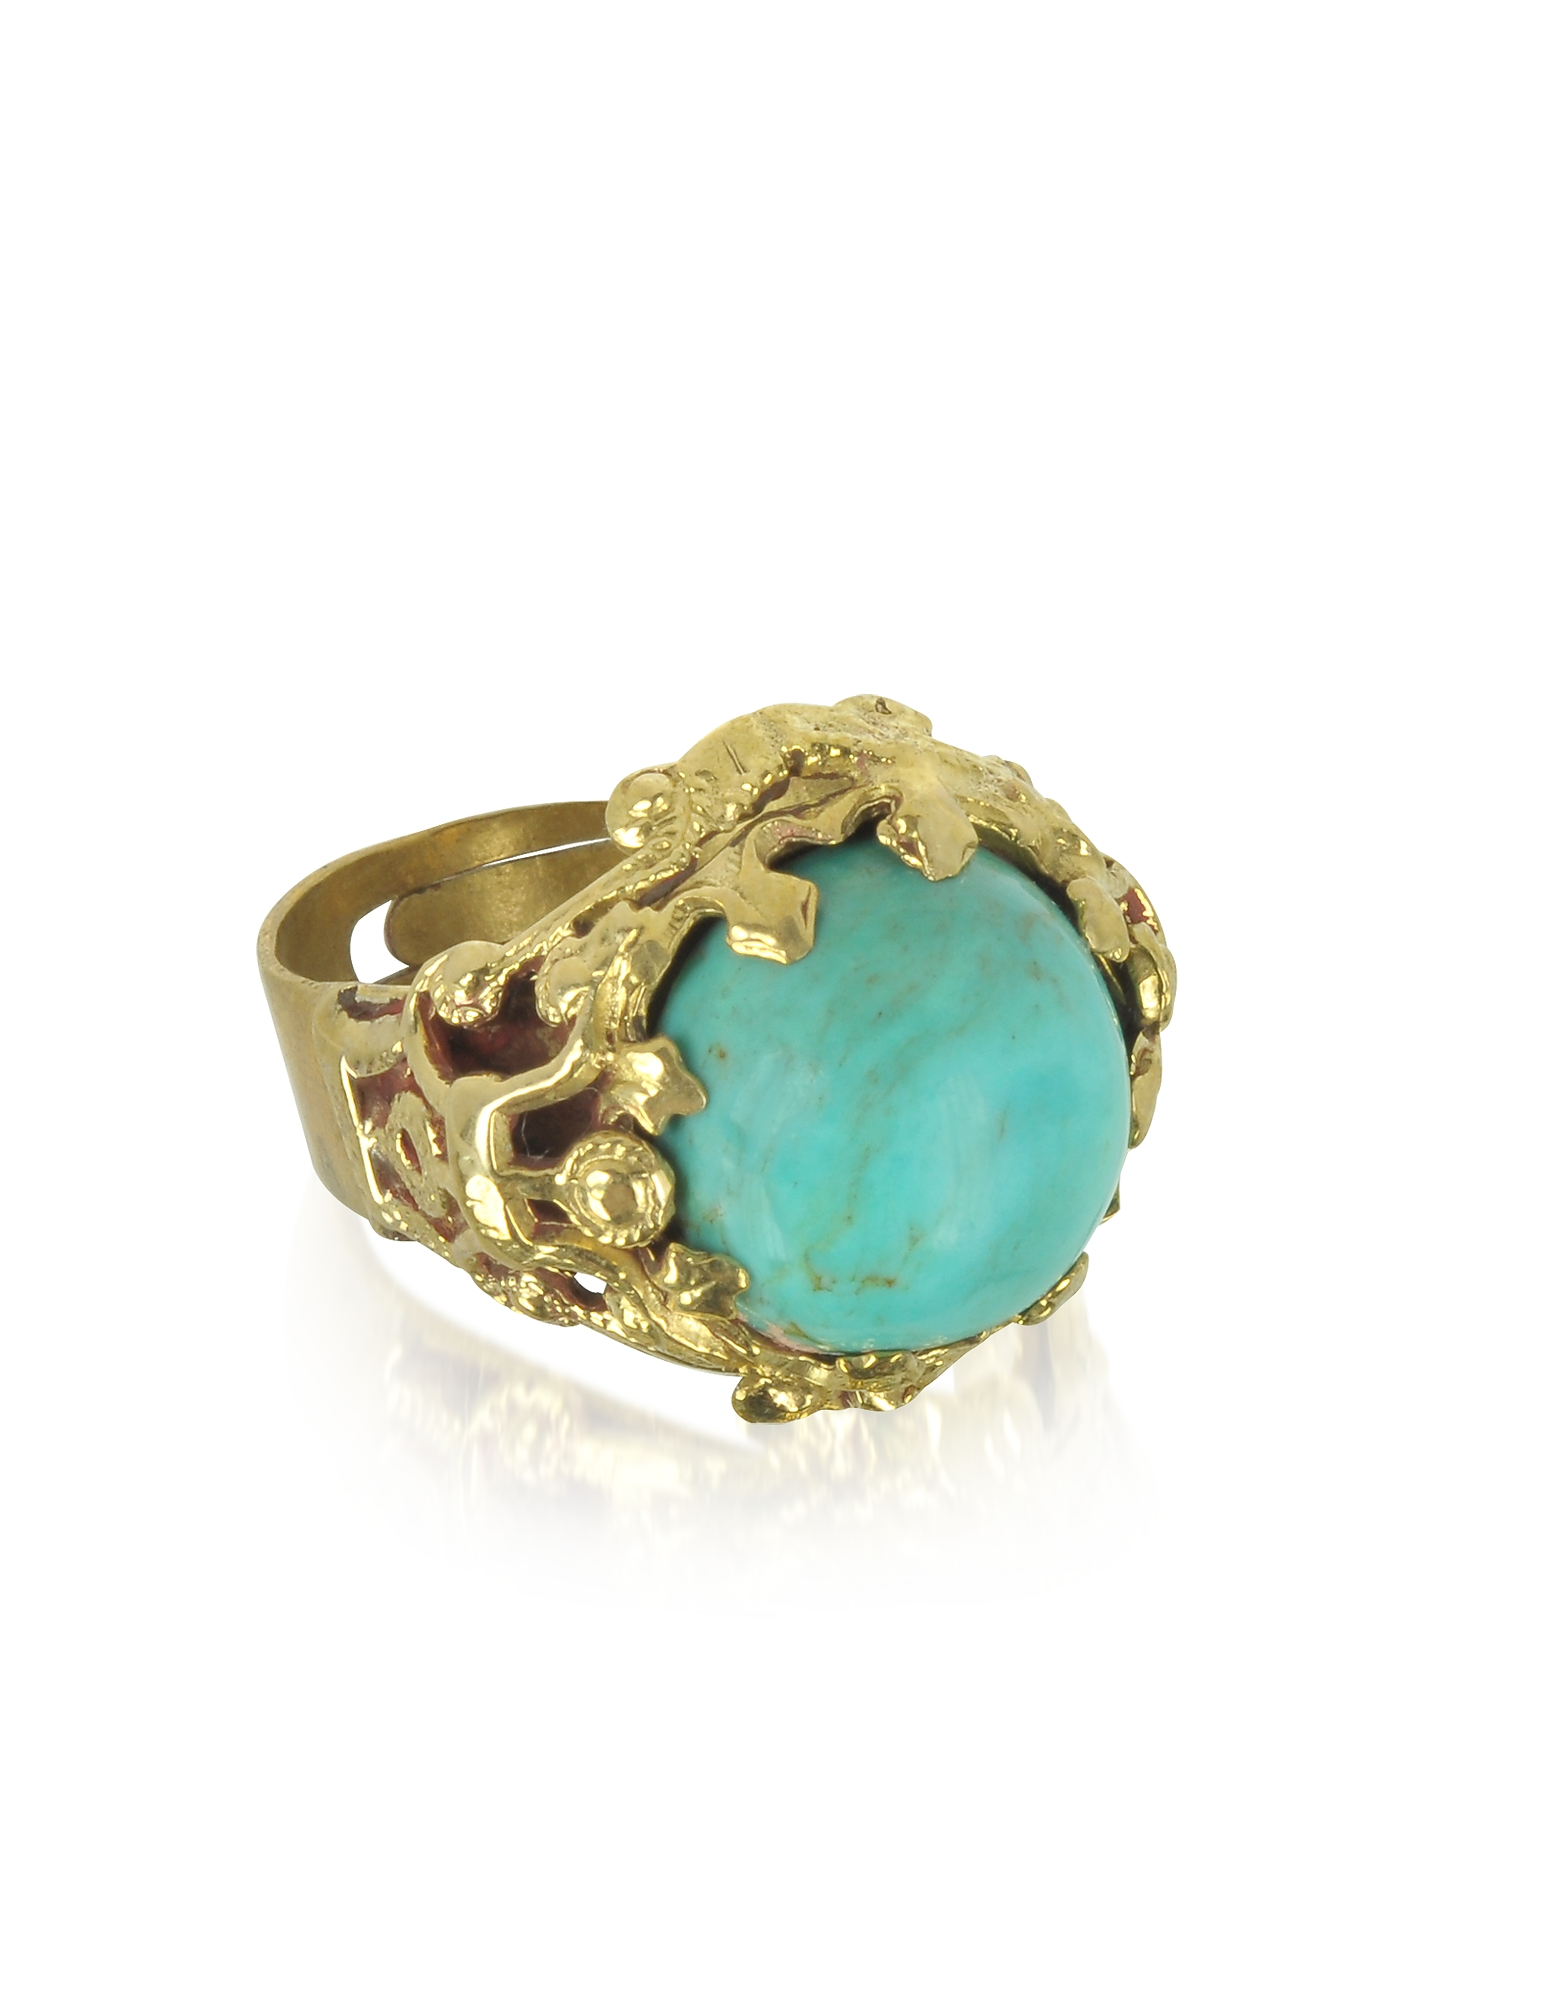 Sara Bencini Rings, Polished Brass and Turquoise Round Cabochon Florence Ring